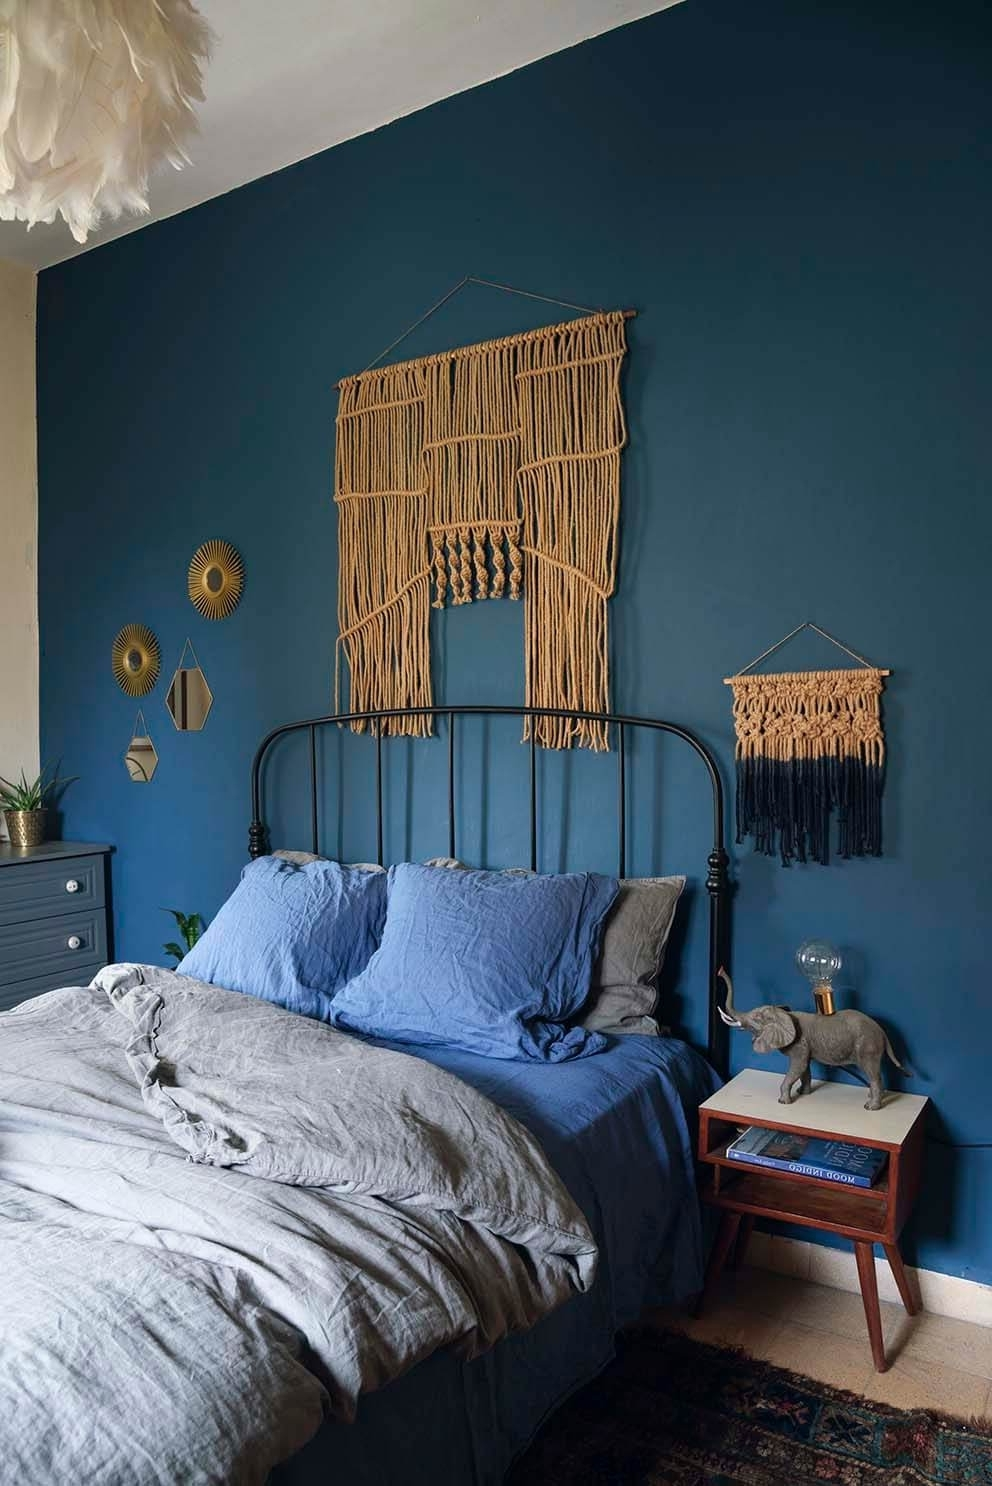 2017 Wall Accents For Blue Room Intended For This Is How To Decorate With Blue Walls (View 1 of 15)